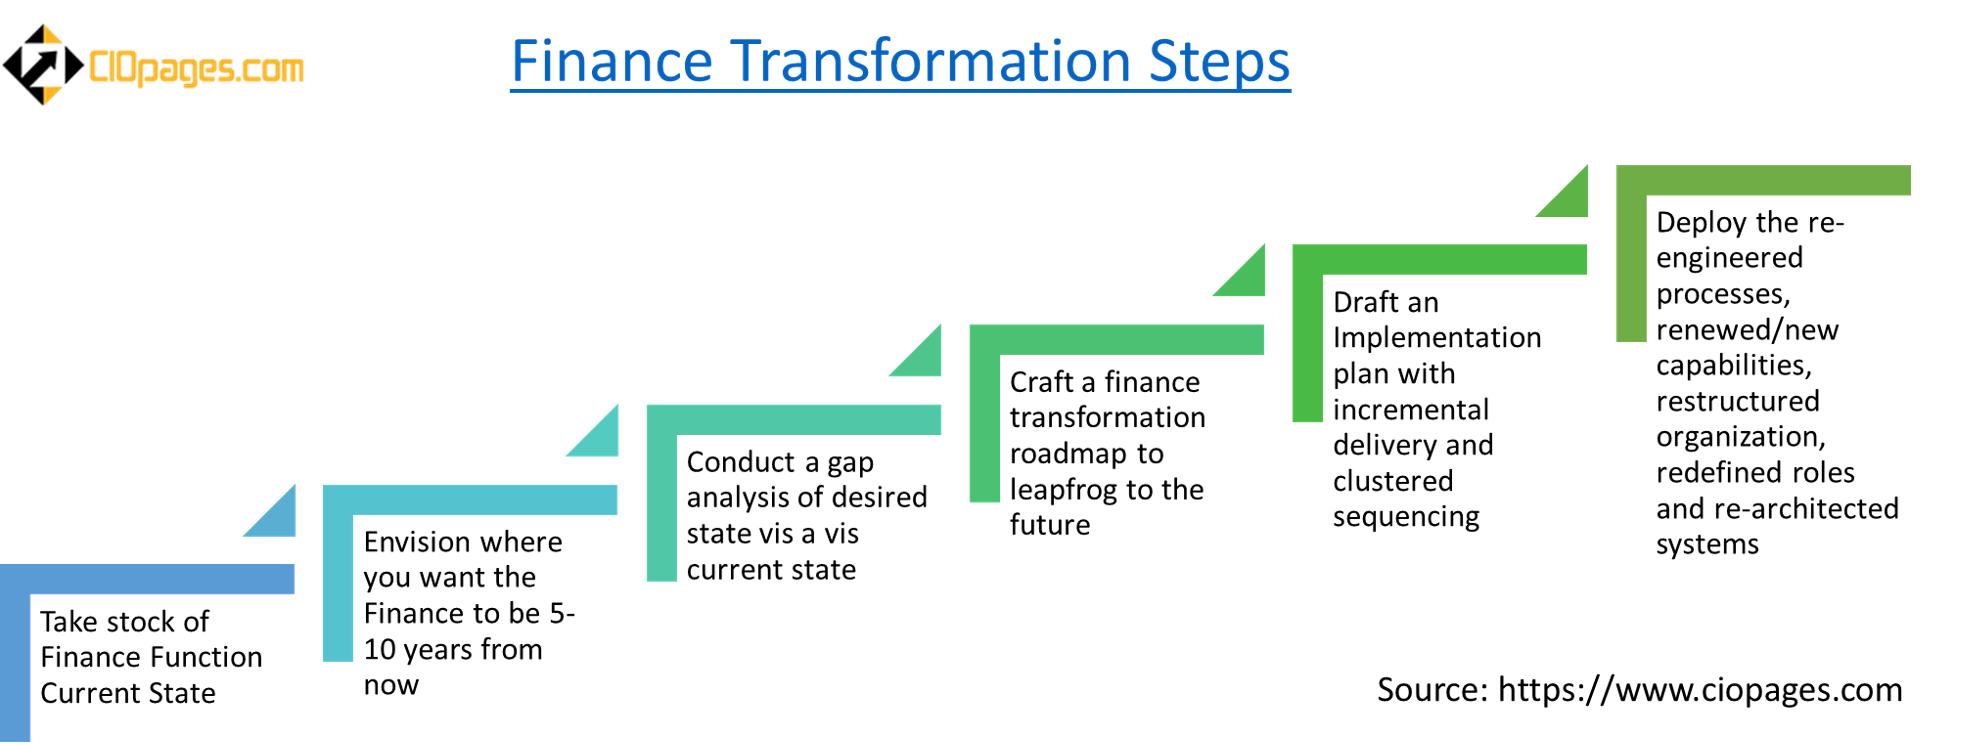 Accounting And Finance Transformation Roadmap - Financial roadmap template